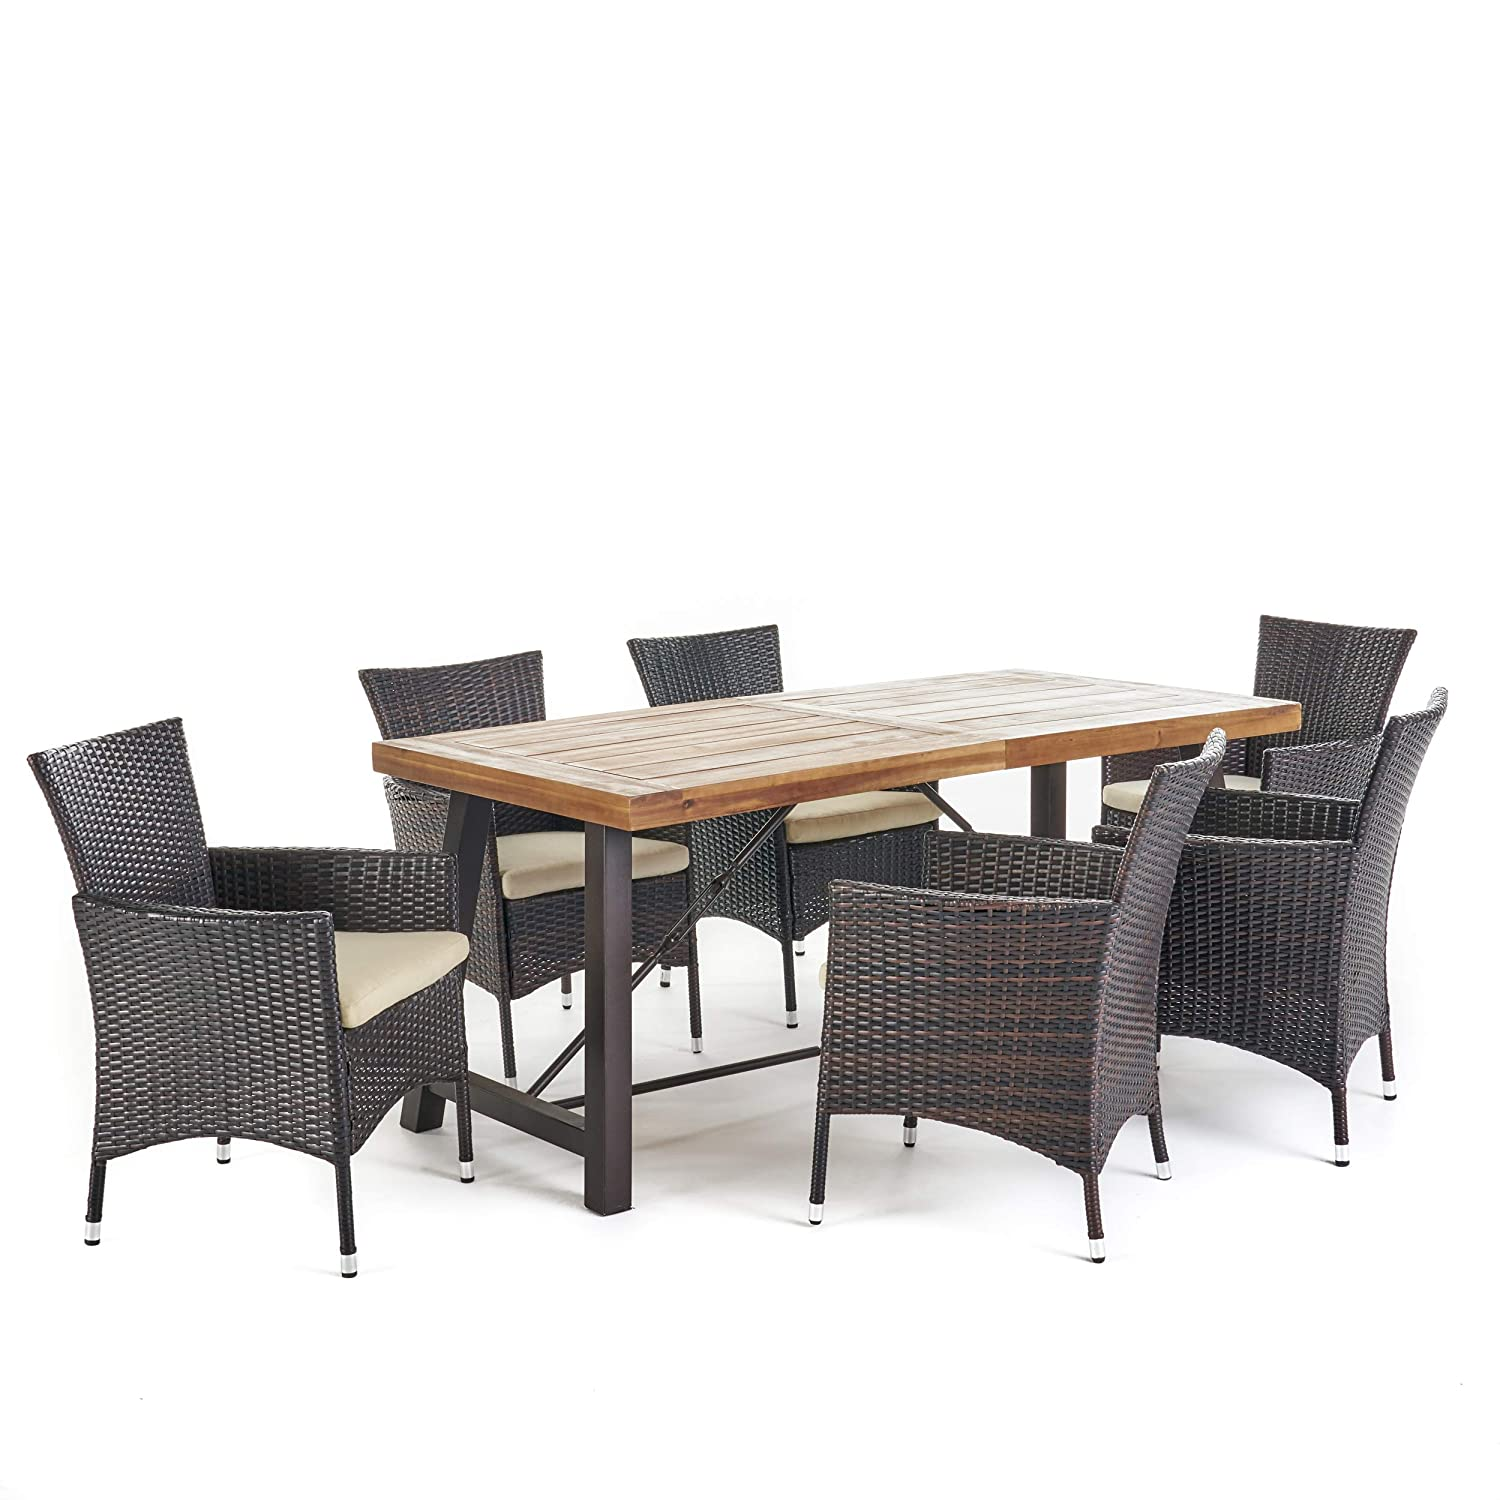 Amazon com great deal furniture sernos 7 piece outdoor dining set wood table wicker dining chairs with cushions in multibrown with teak finish